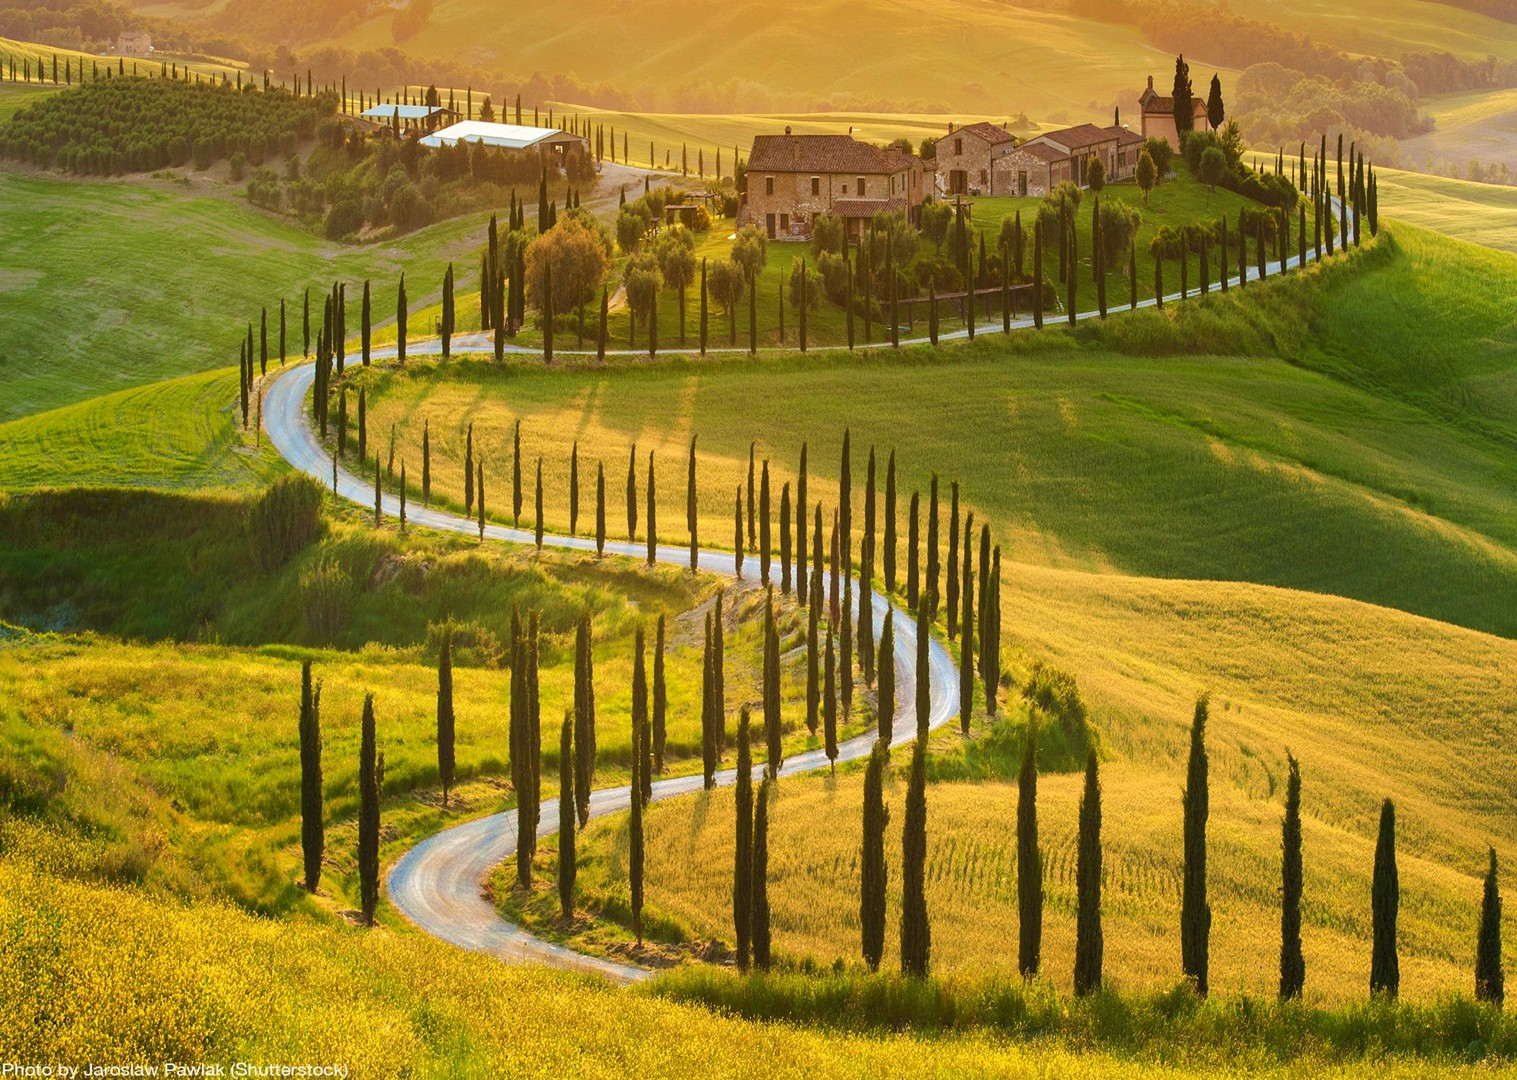 cypress-snakes-tuscany-leisure-bike-tour-self-guided.jpg - Italy - Tuscany - Pisa to Florence - Self-Guided Leisure Cycling Holiday - Italia Leisure and Family Cycling